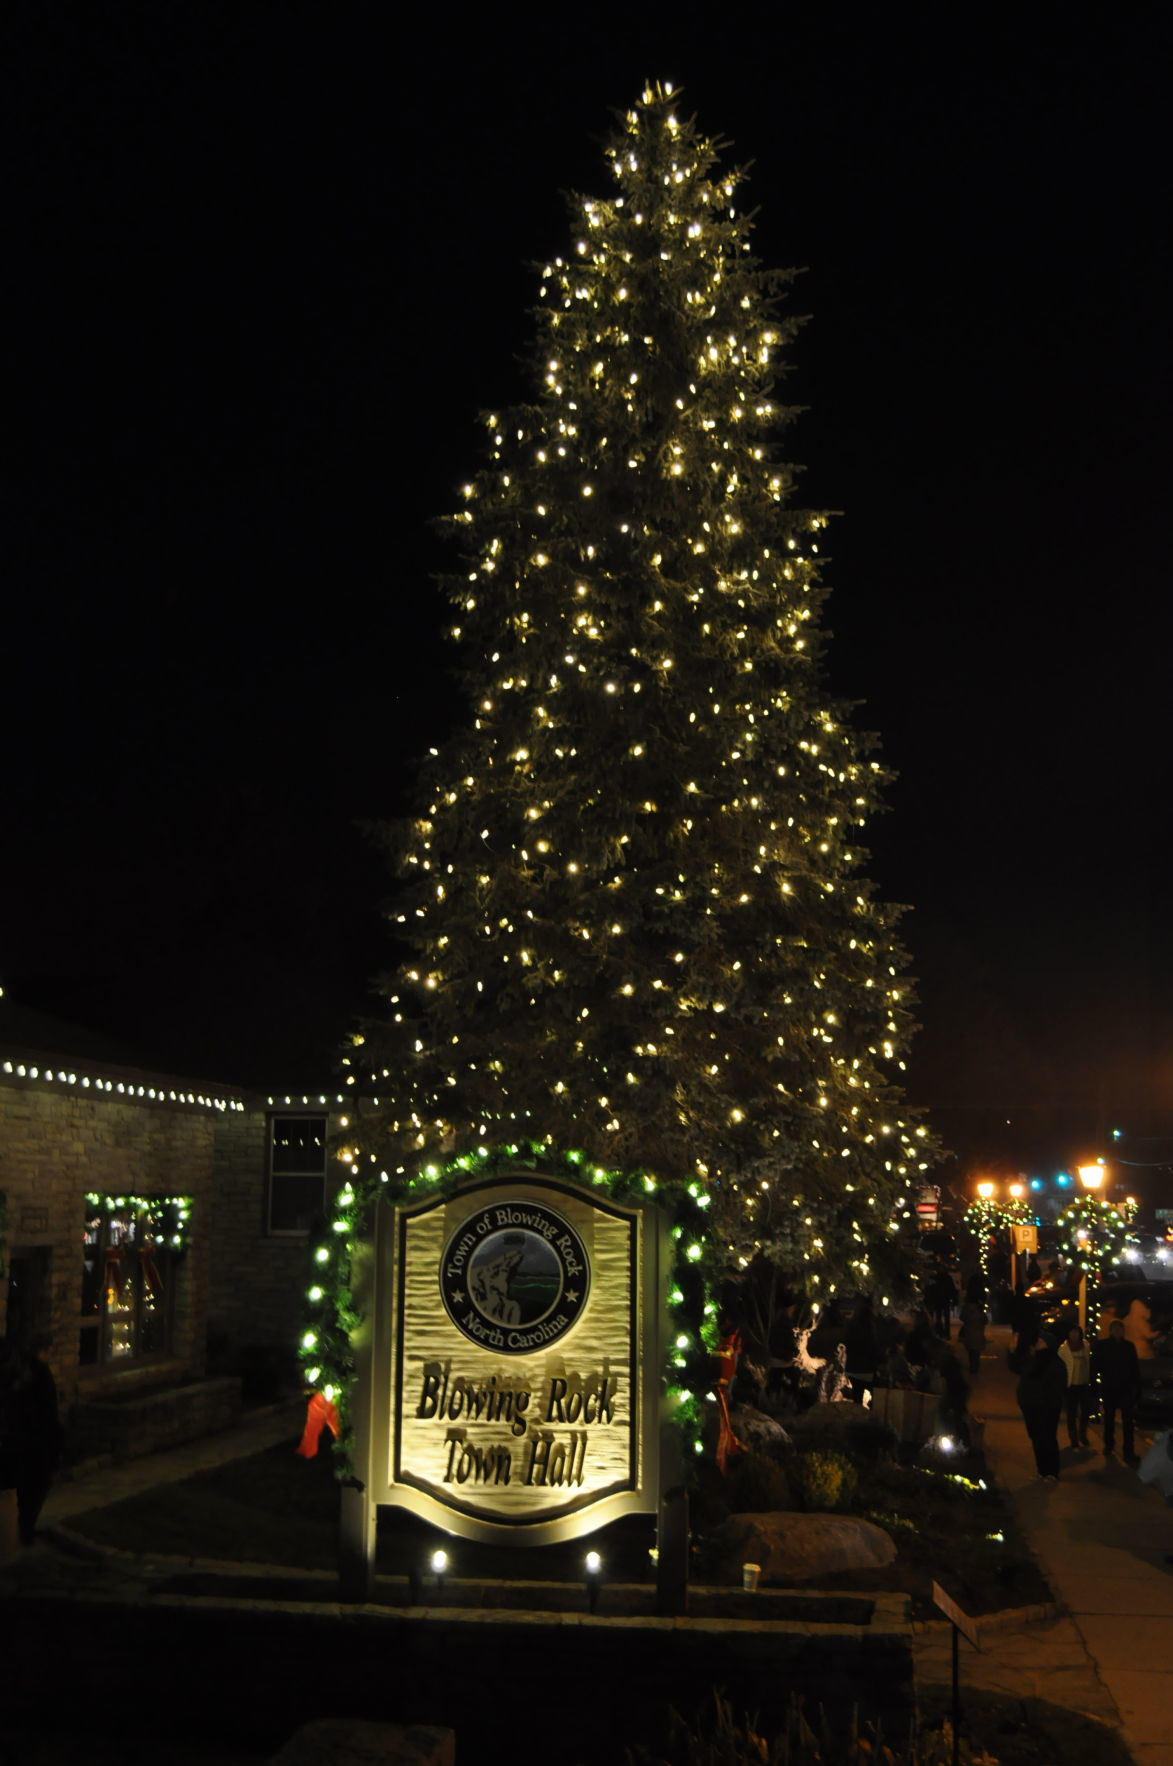 Town Hall tree